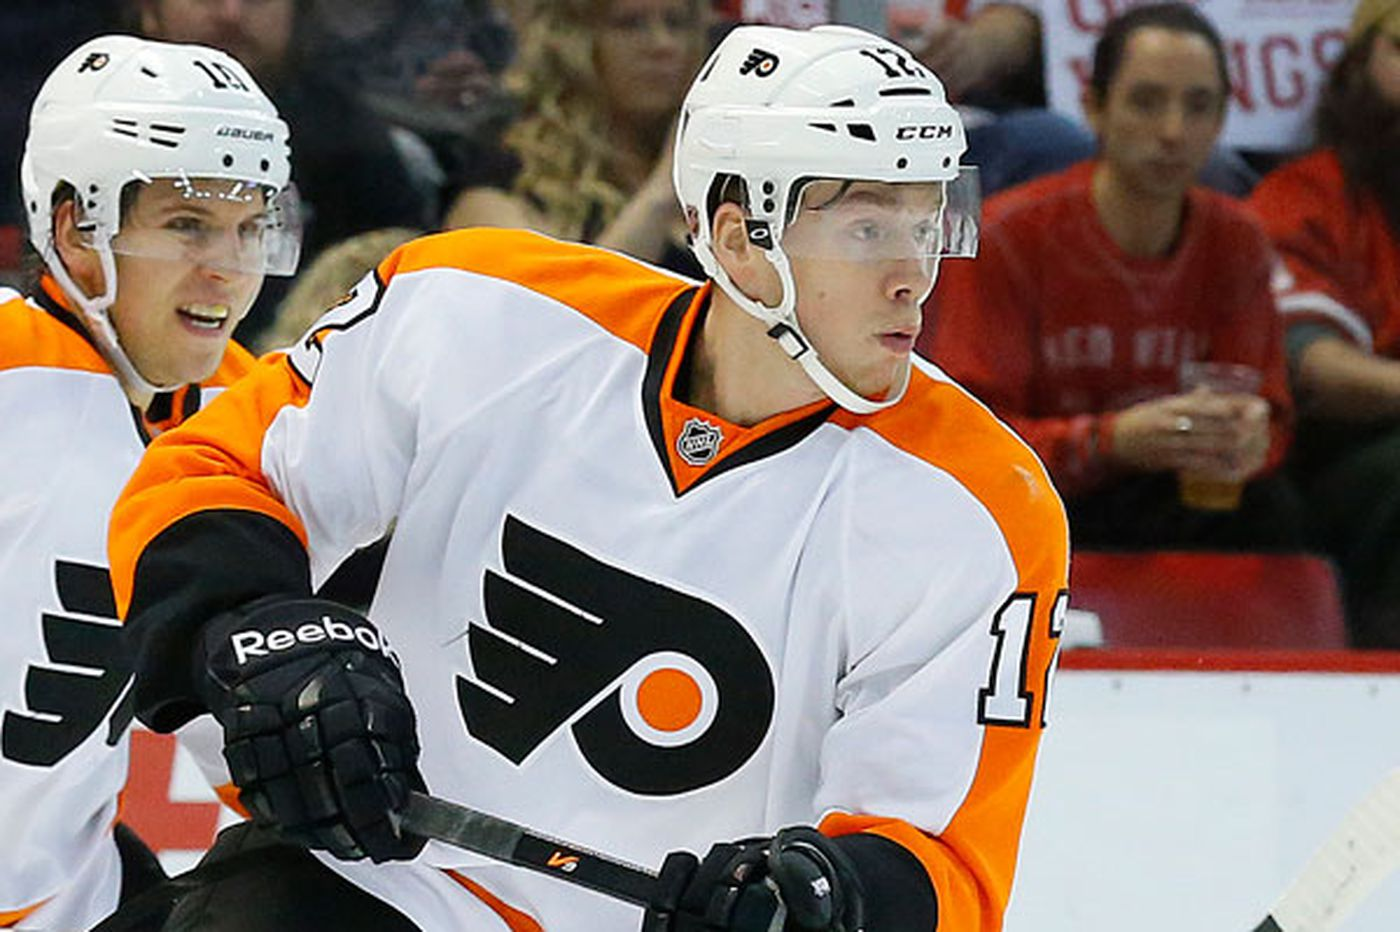 Offense is Raffl's ticket to stay with the Flyers